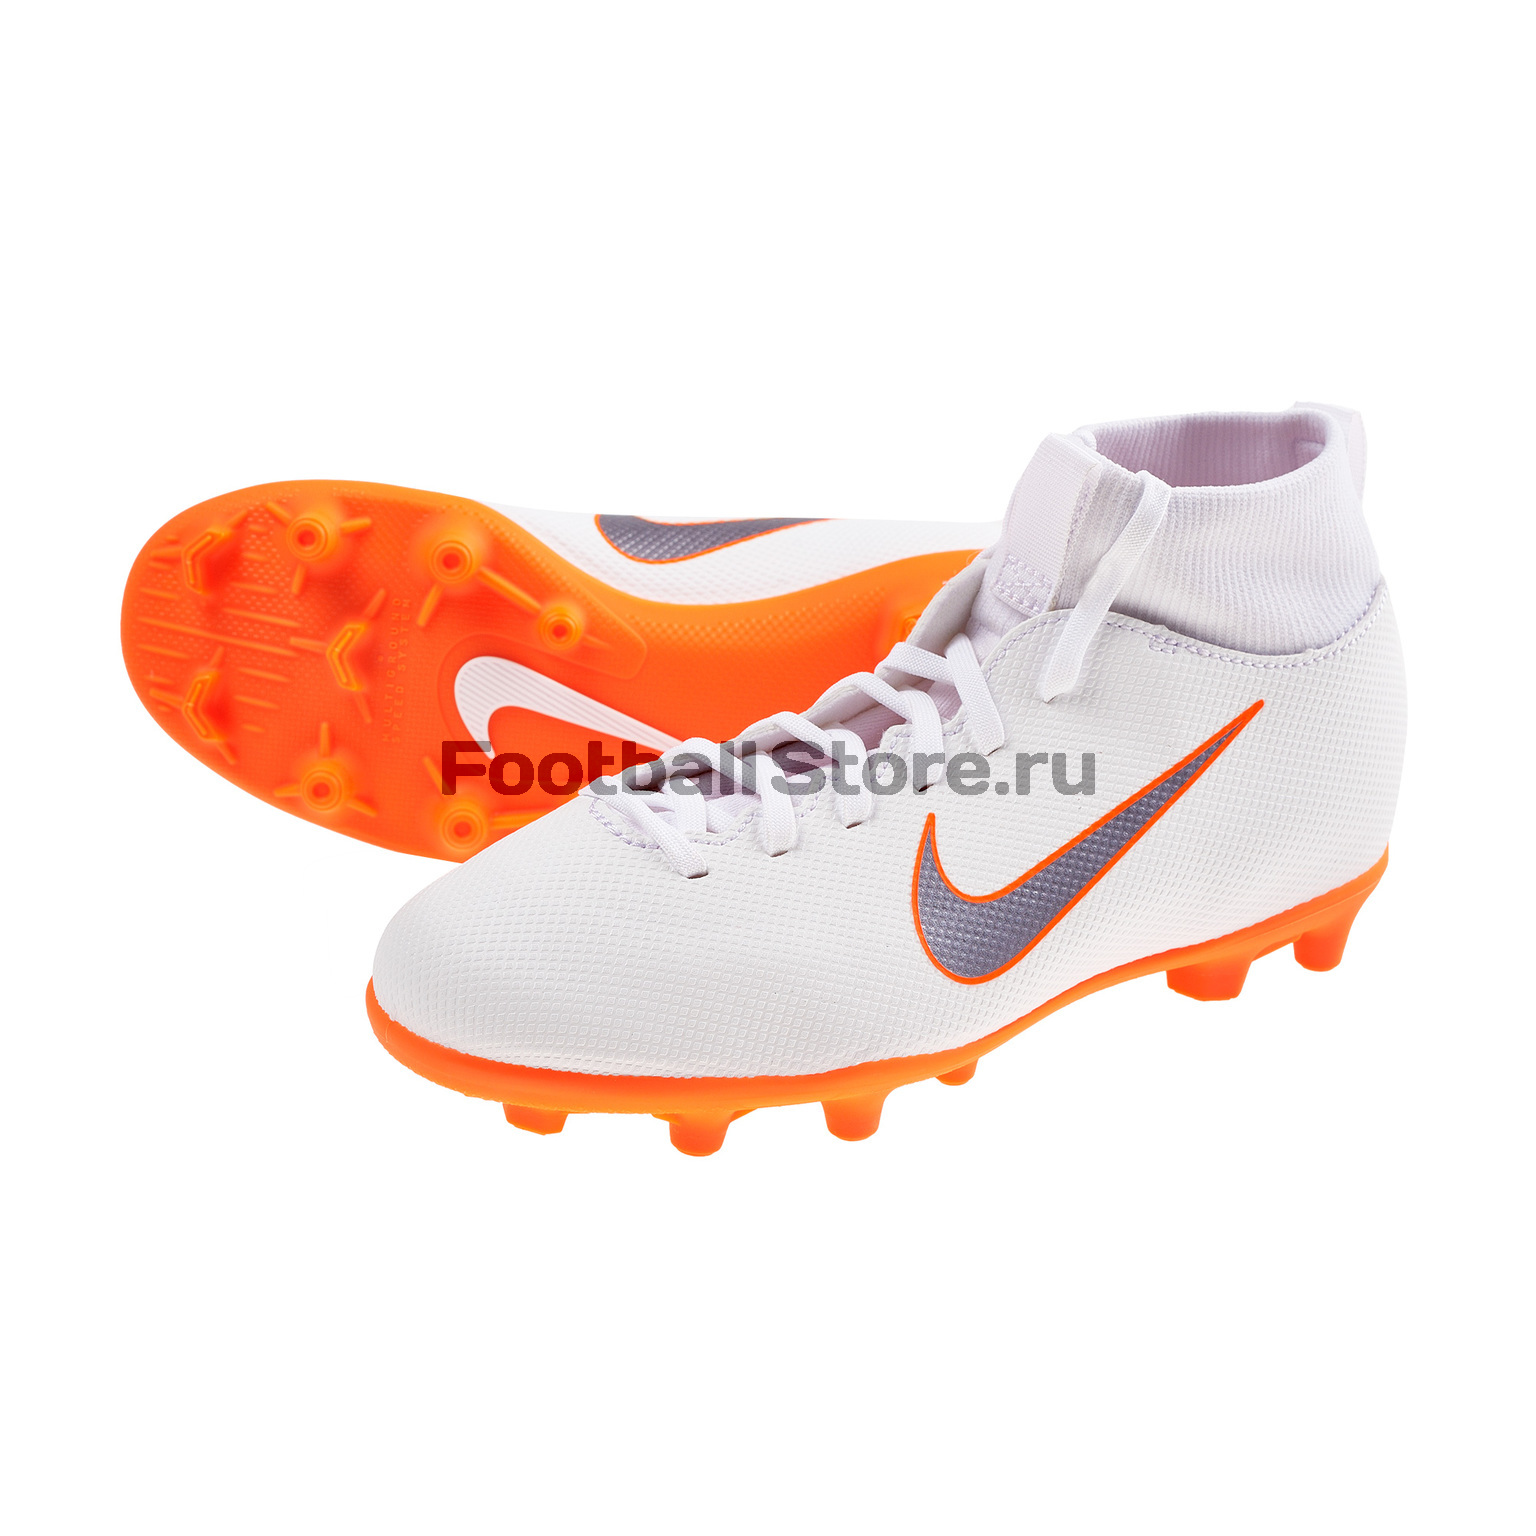 Бутсы детские Nike Superfly 6 Club FG/MG AH7339-107 бутсы nike superfly 6 elite sg pro ac ah7366 060